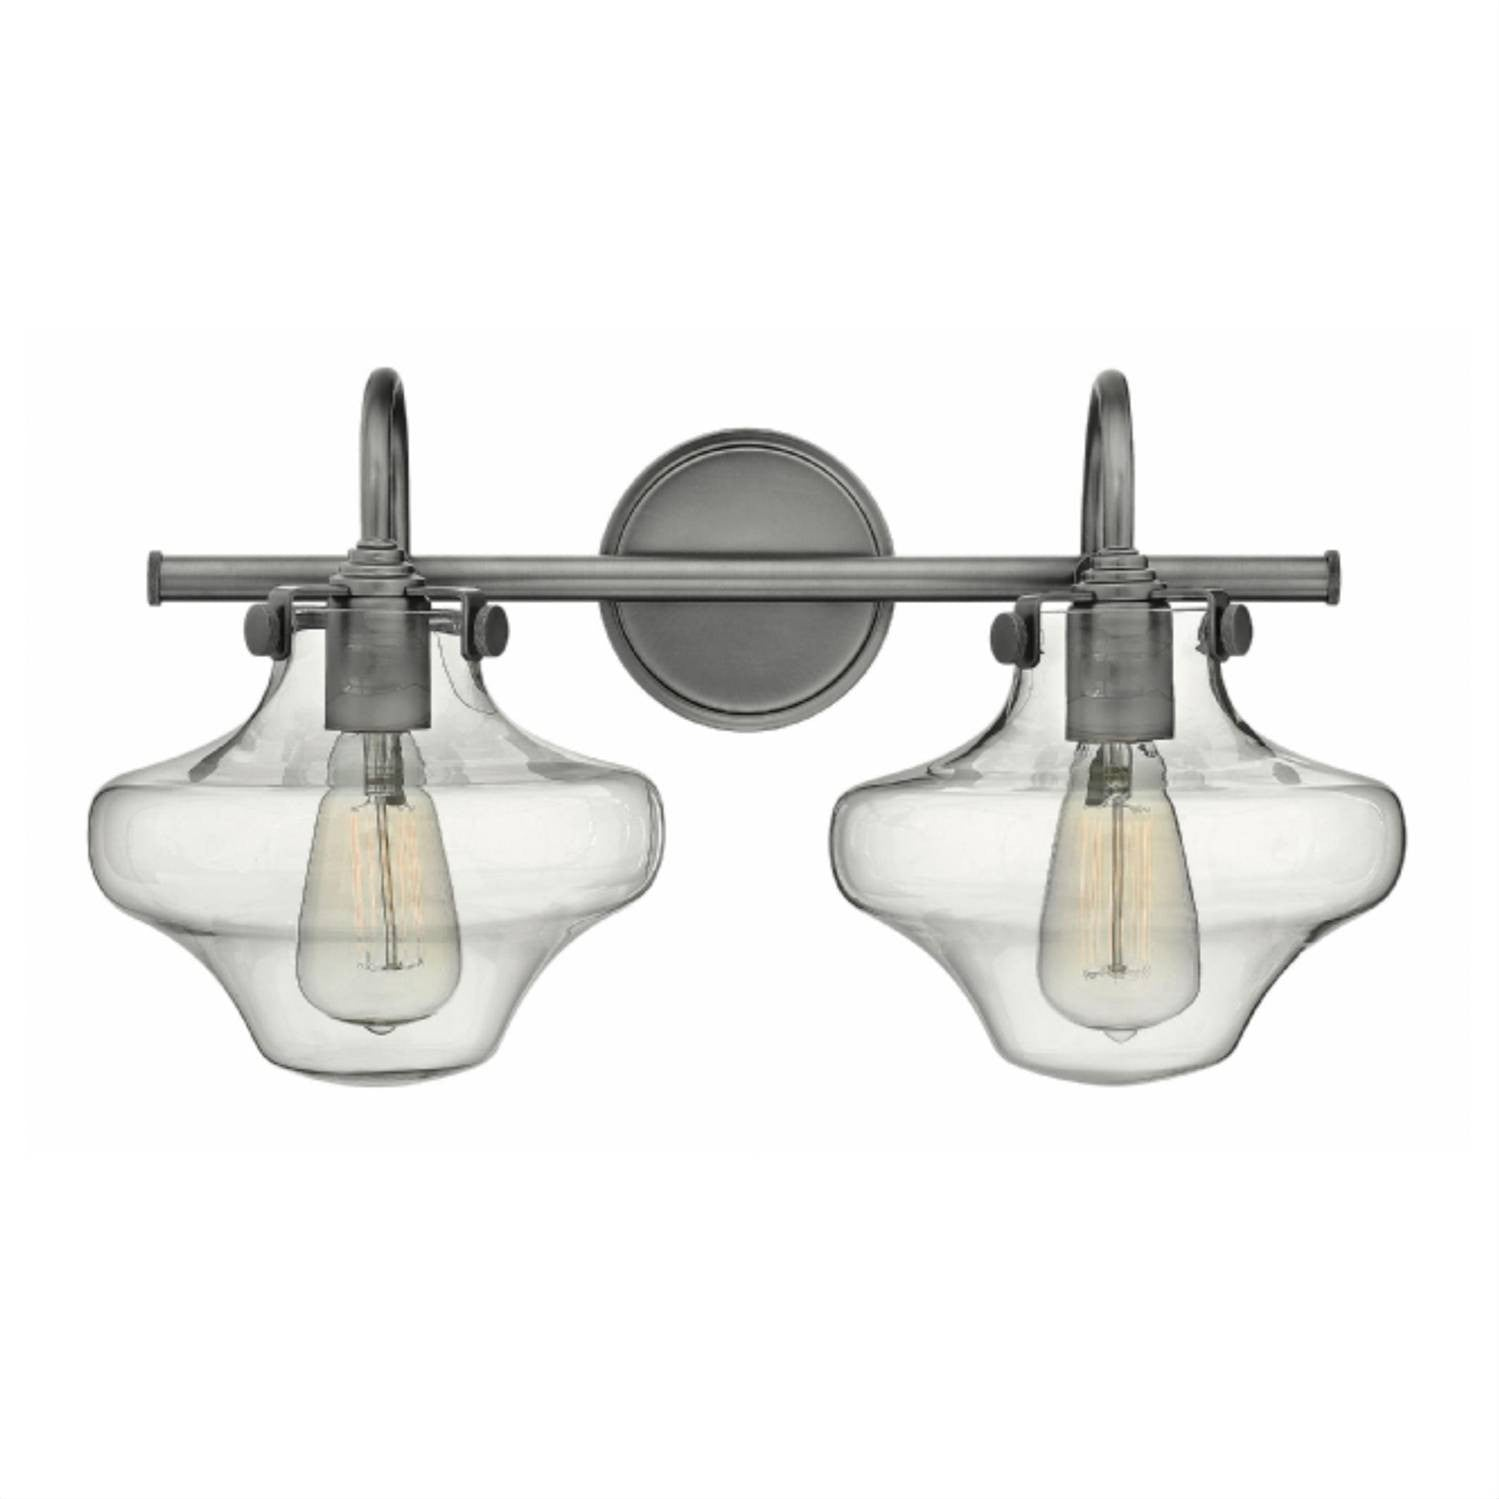 Congress 2 Light Hurricane Vanity in Antique Nickel with Clear Glass Shades by Hinkley Lighting 50021AN